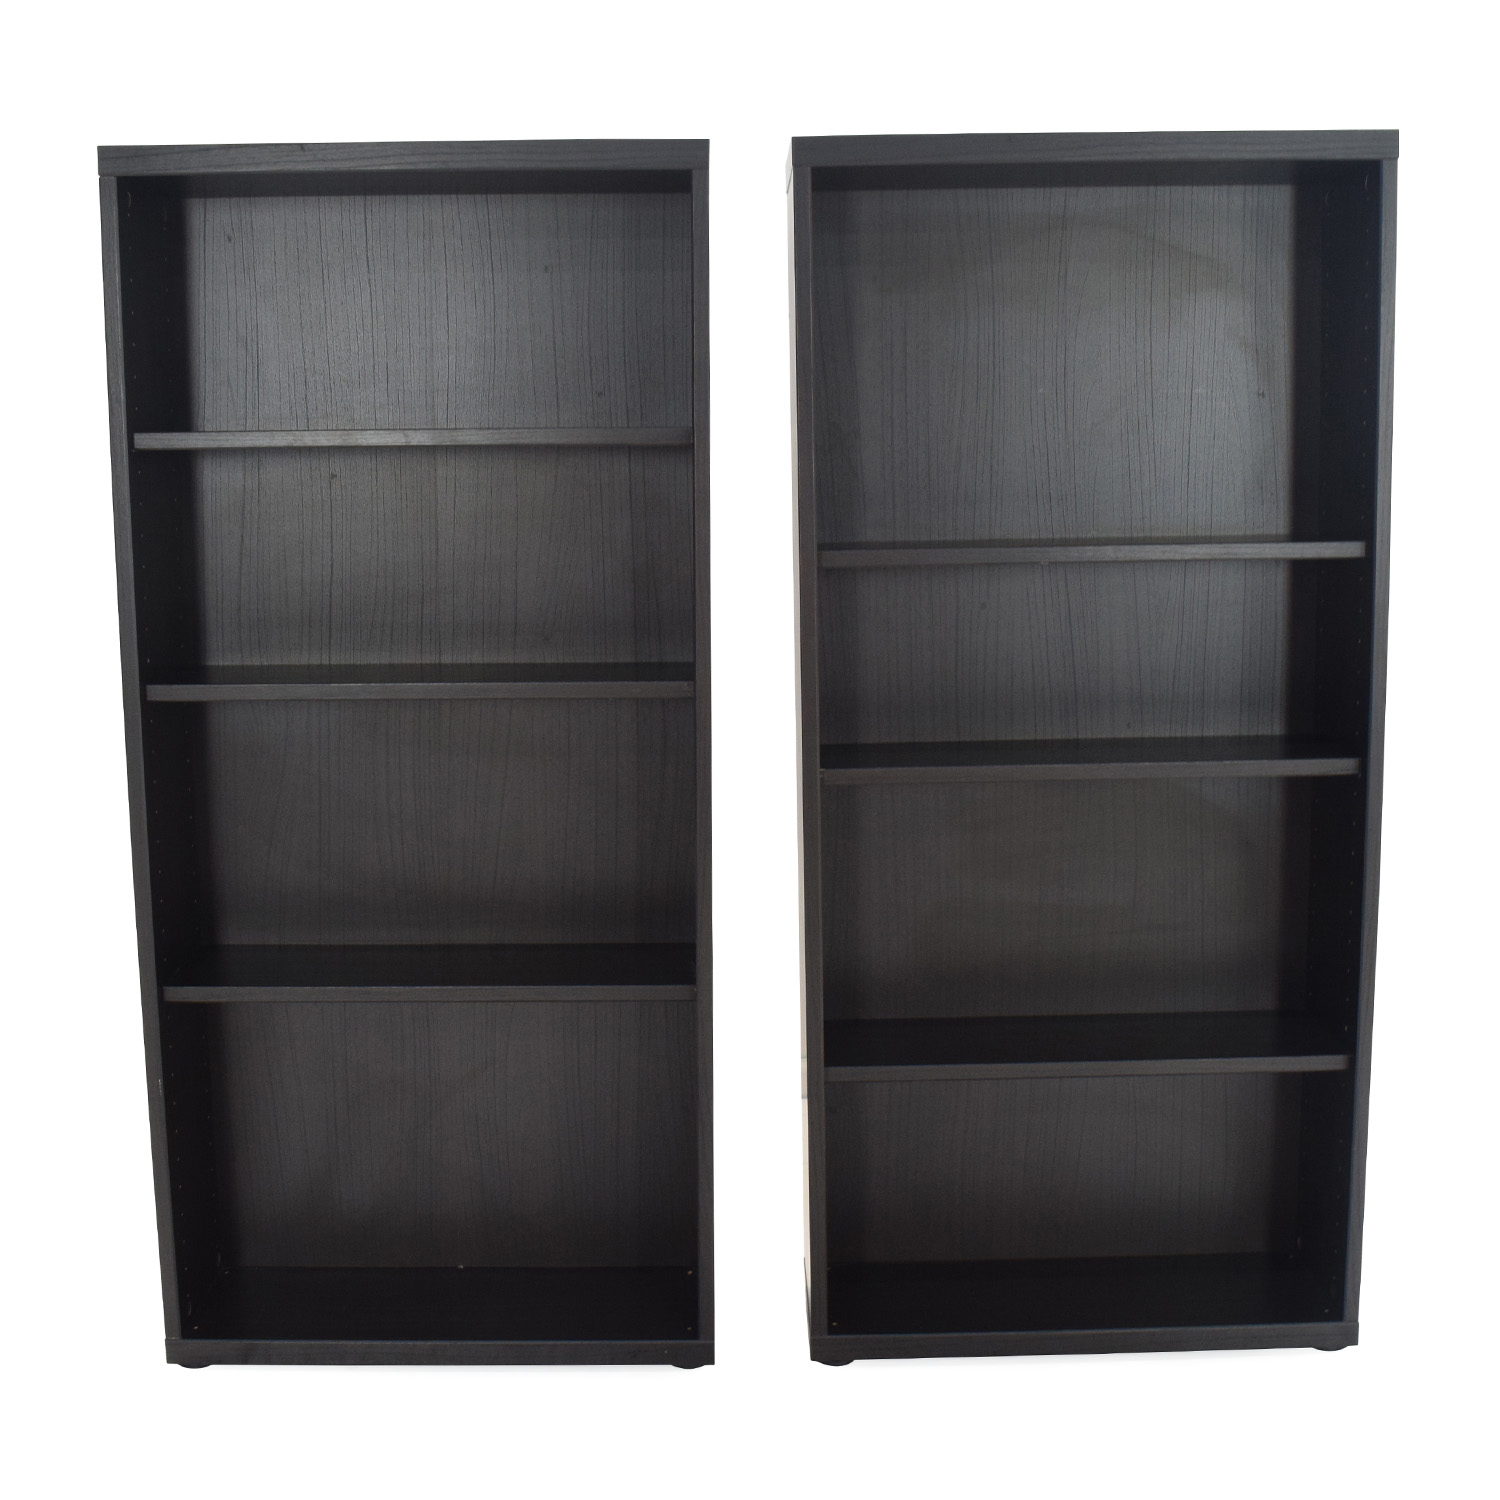 Pair of Bookshelves sale